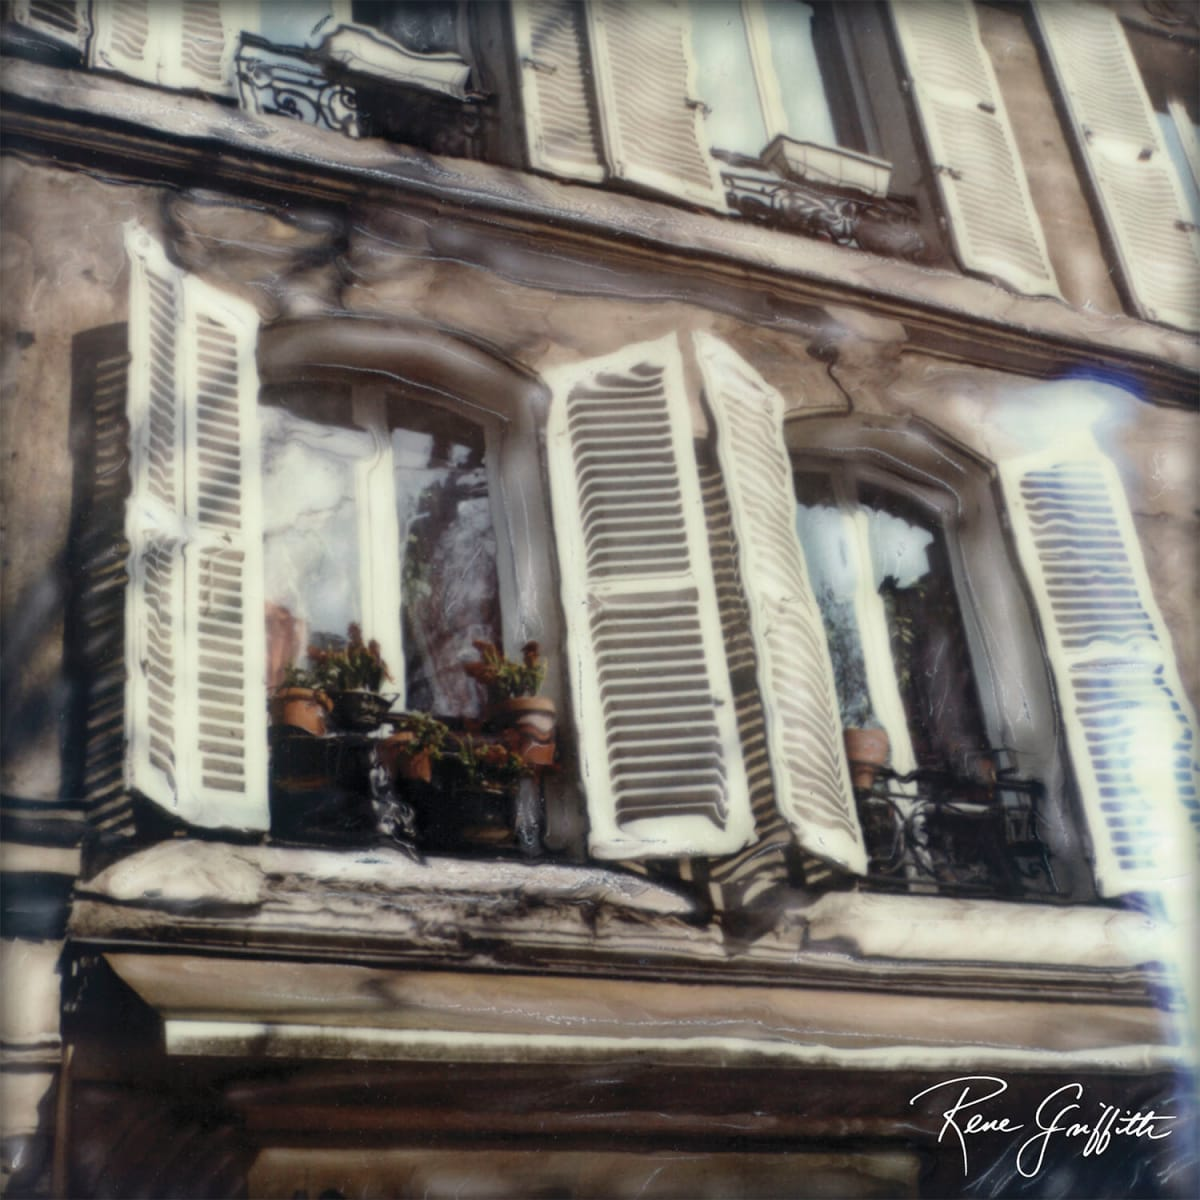 Windows to Paris by Rene Griffith